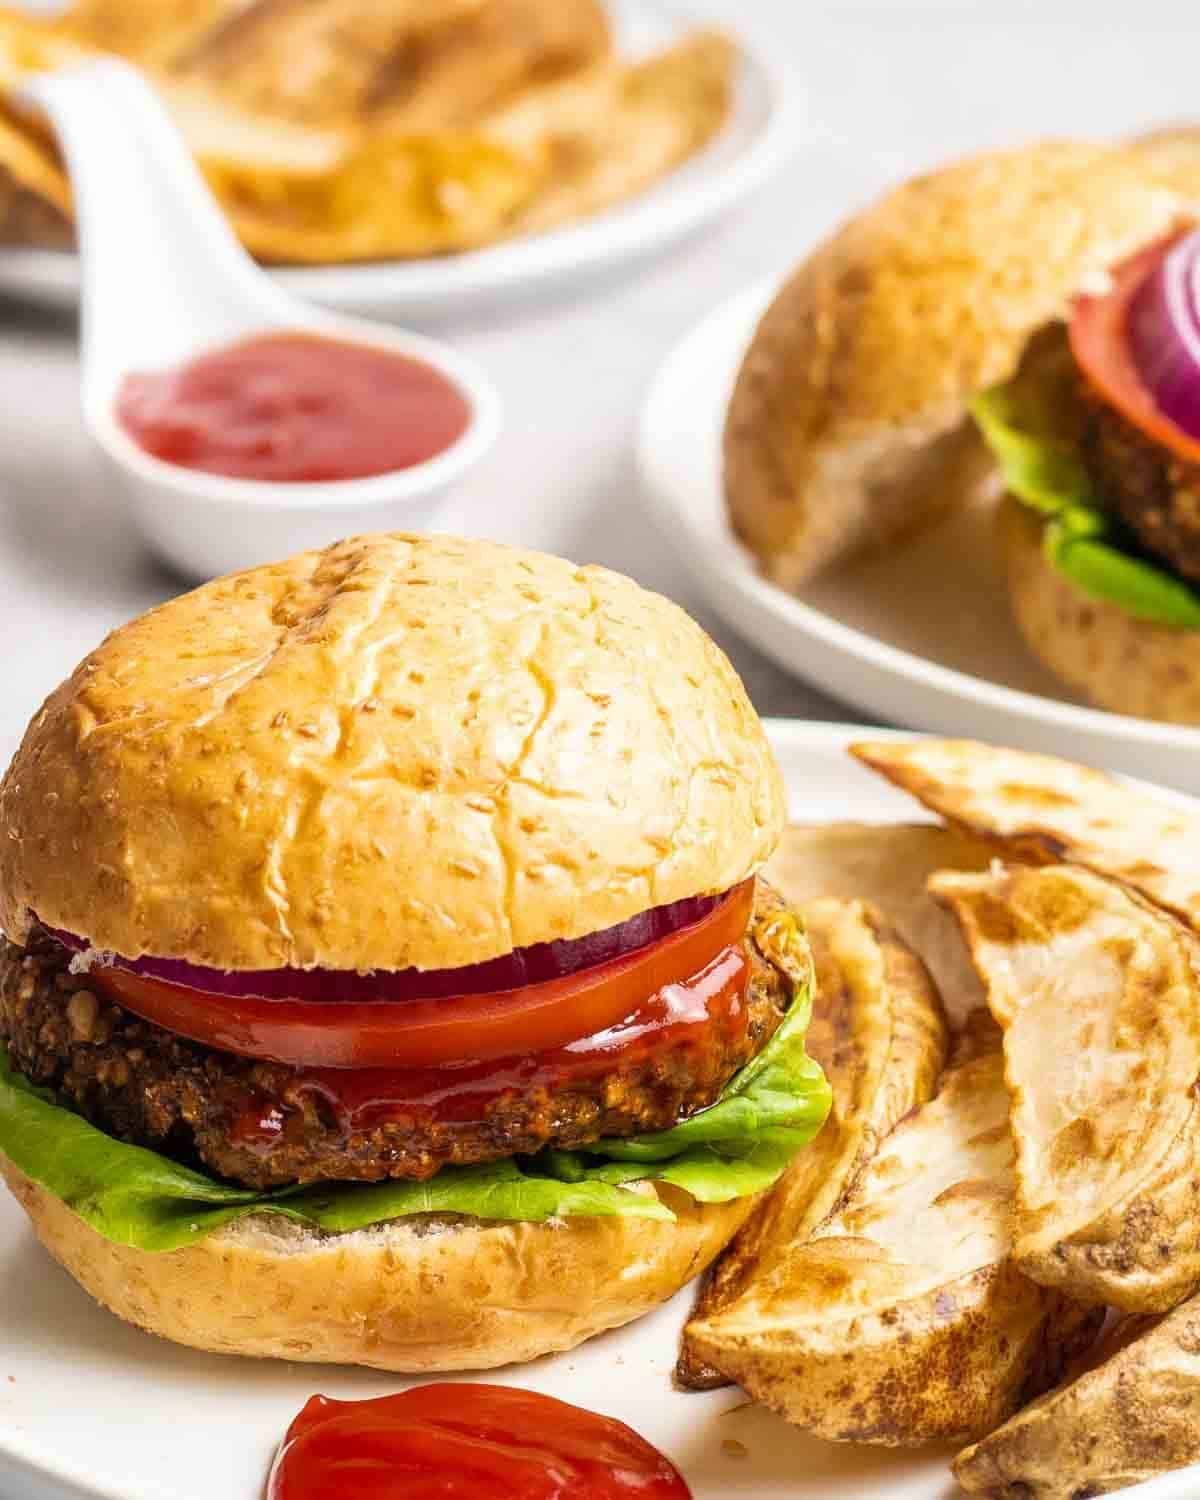 Burger served with a side of potato wedges in a white plate with dish of tomato sauce in the background.